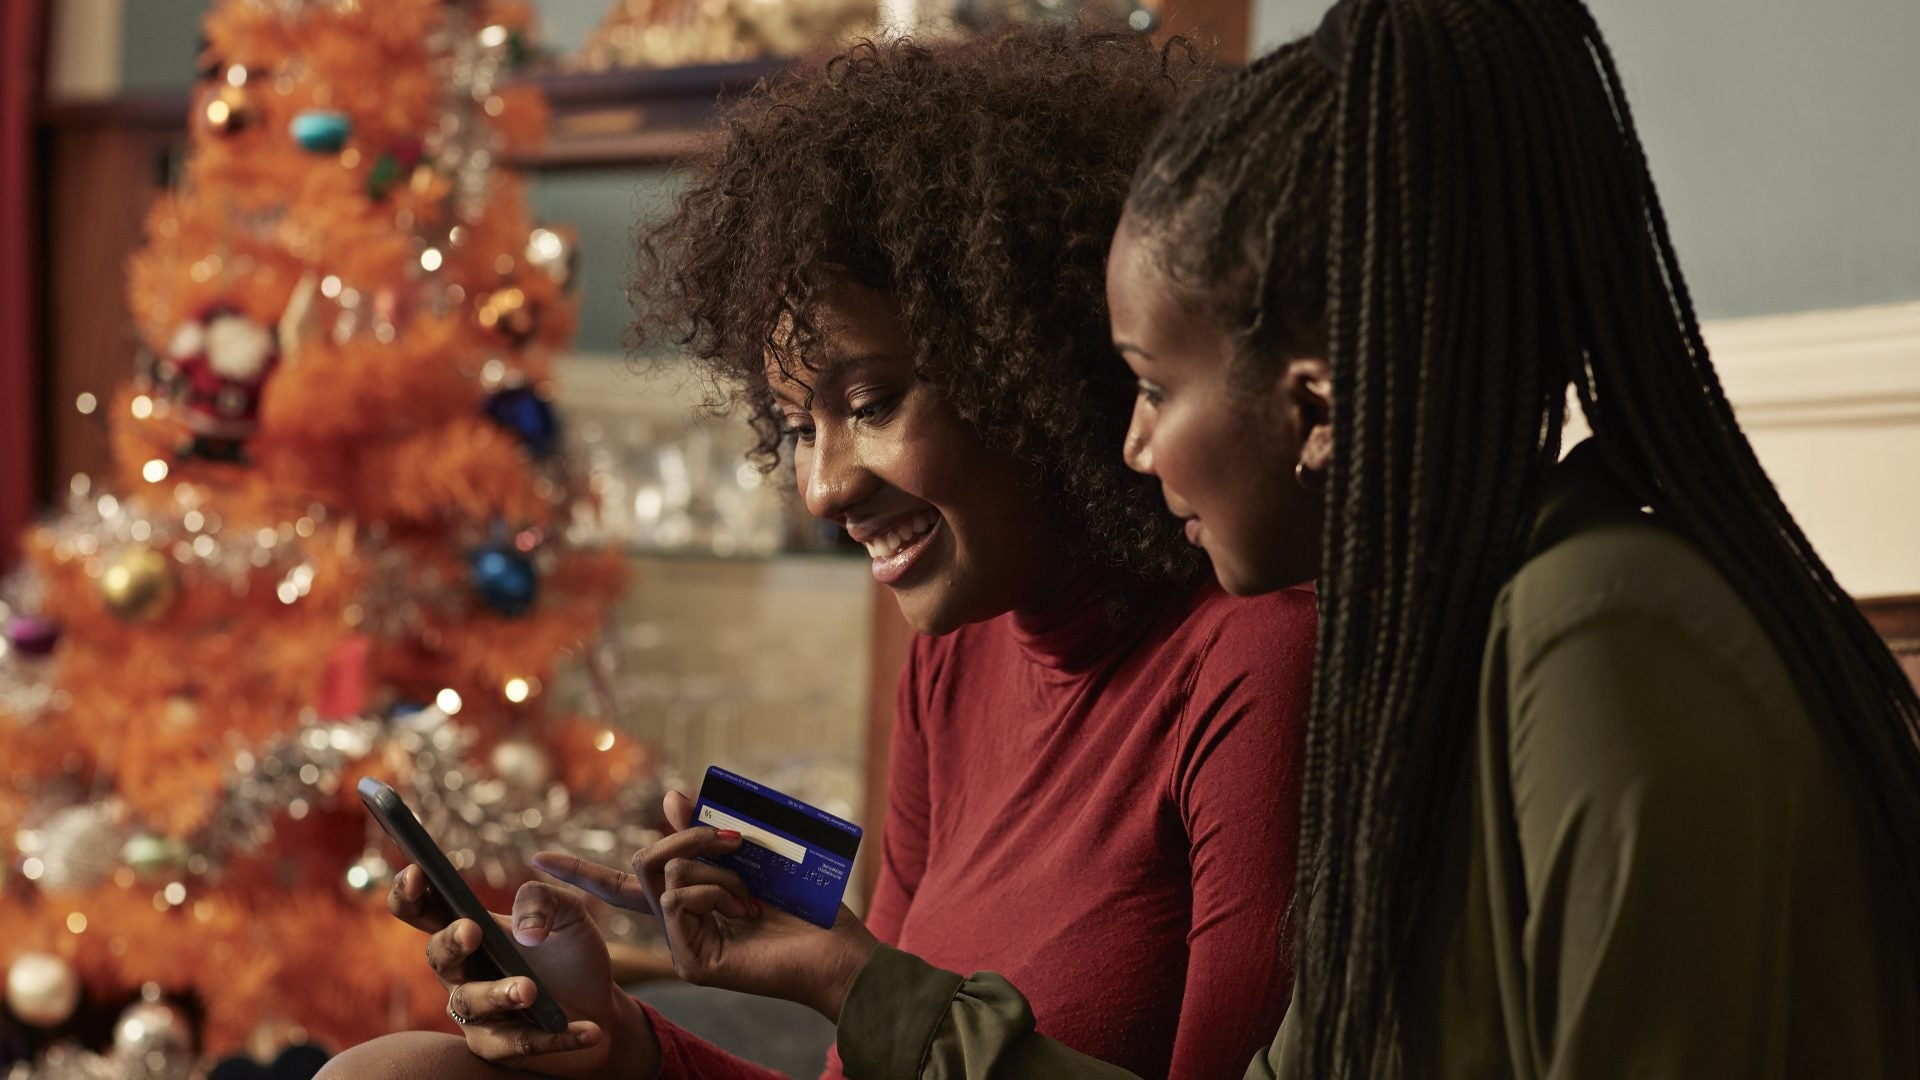 How Much Did We Really Spend On Holiday Shopping?